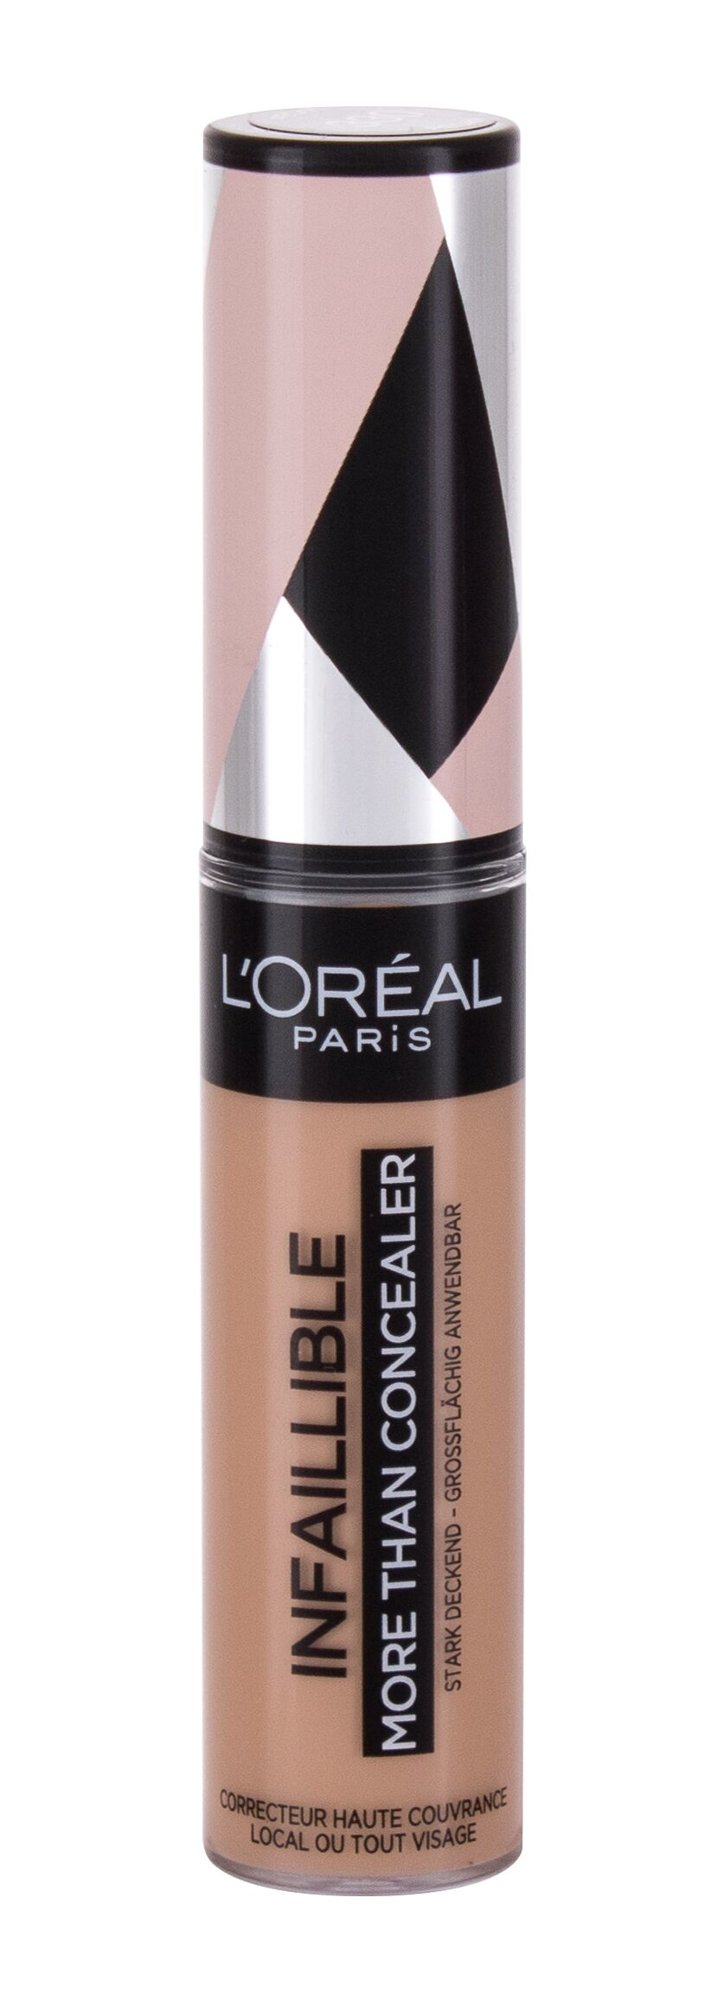 L´Oréal Paris Infallible More Than Concealer, Korrektor 11ml